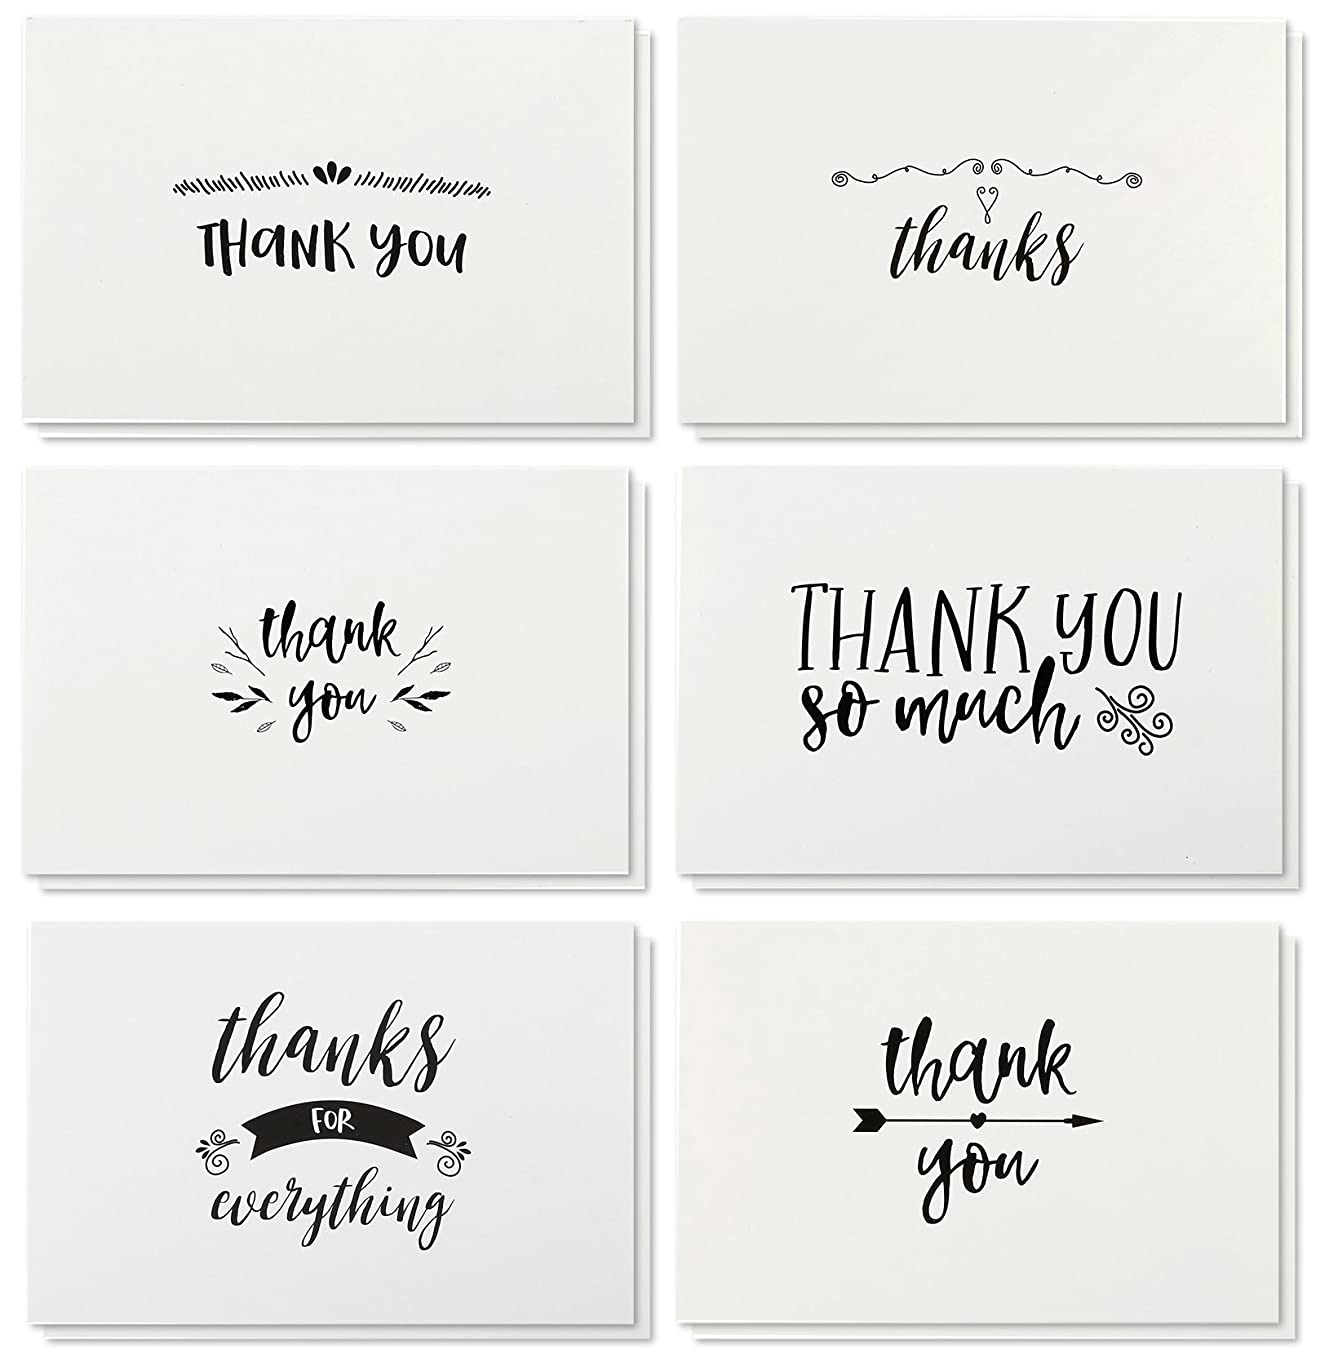 Thank You Cards - 48-Count Thank You Notes, Kraft Paper Bulk Thank You Cards Set - Blank on The Inside, Handwritten Style - Includes Thank You Cards and Envelopes, 4 x 6 inches